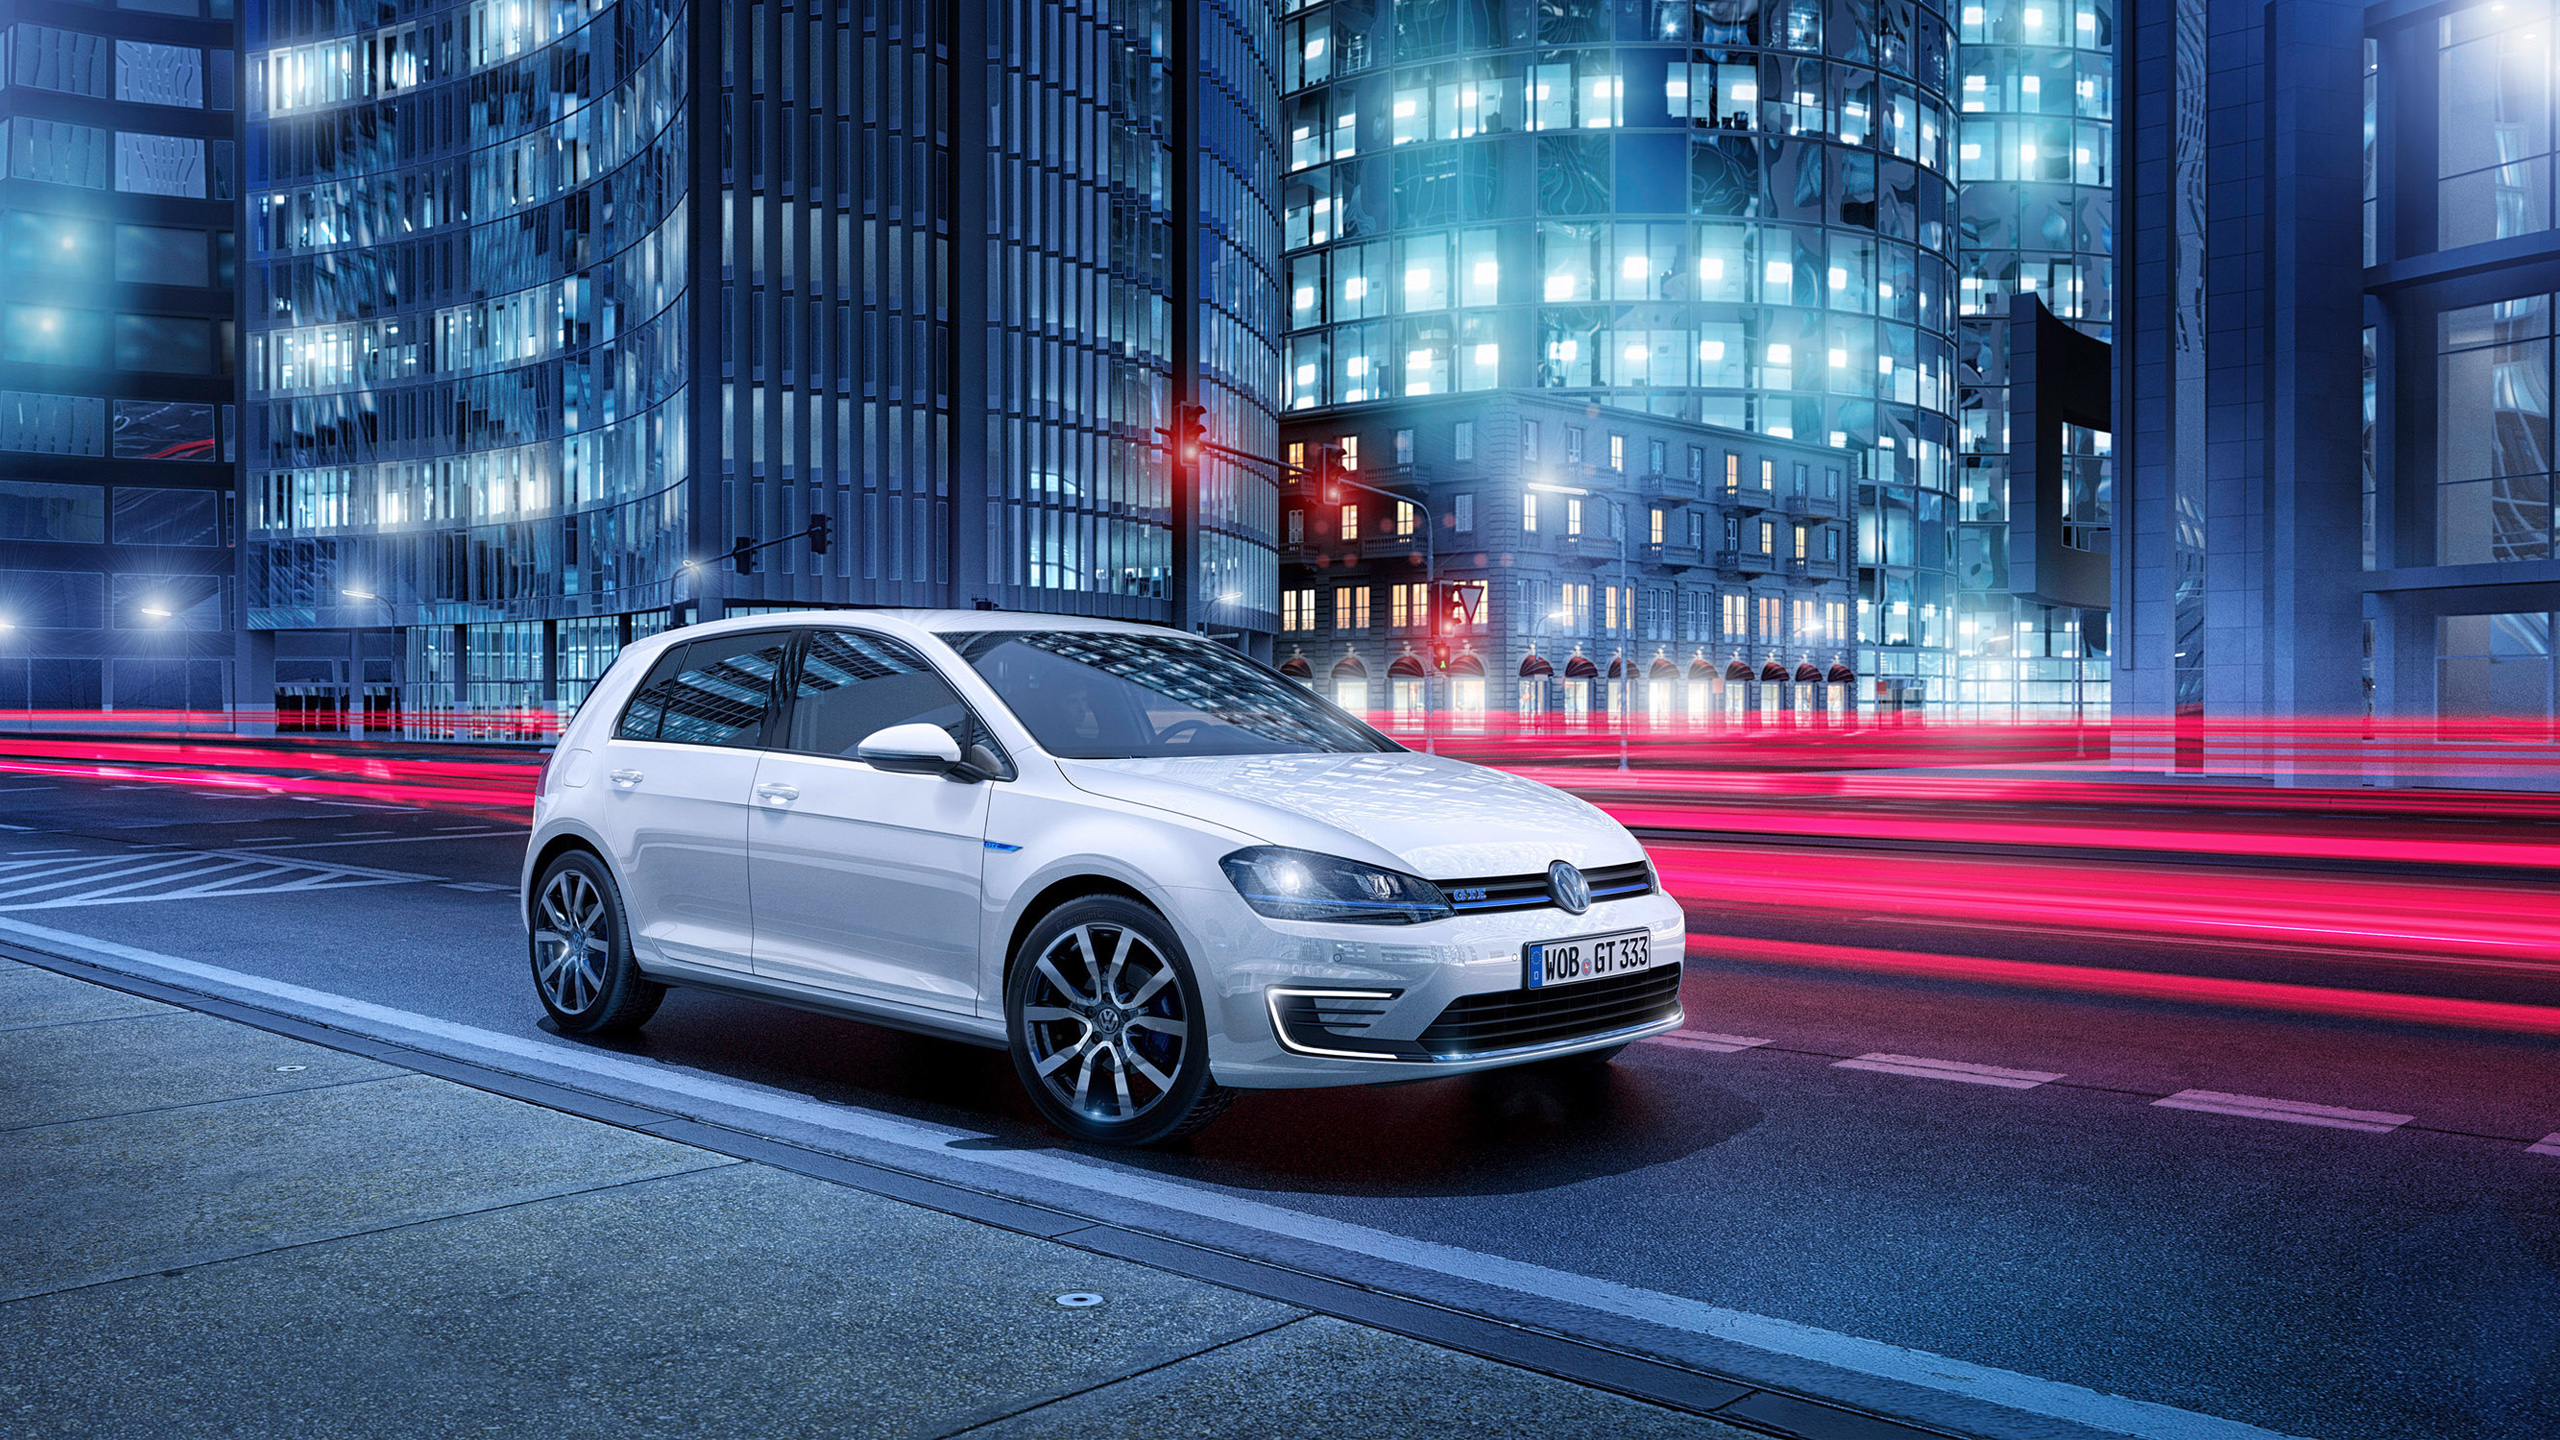 2014 Volkswagen Golf GTE Plug In Hybrid Wallpaper